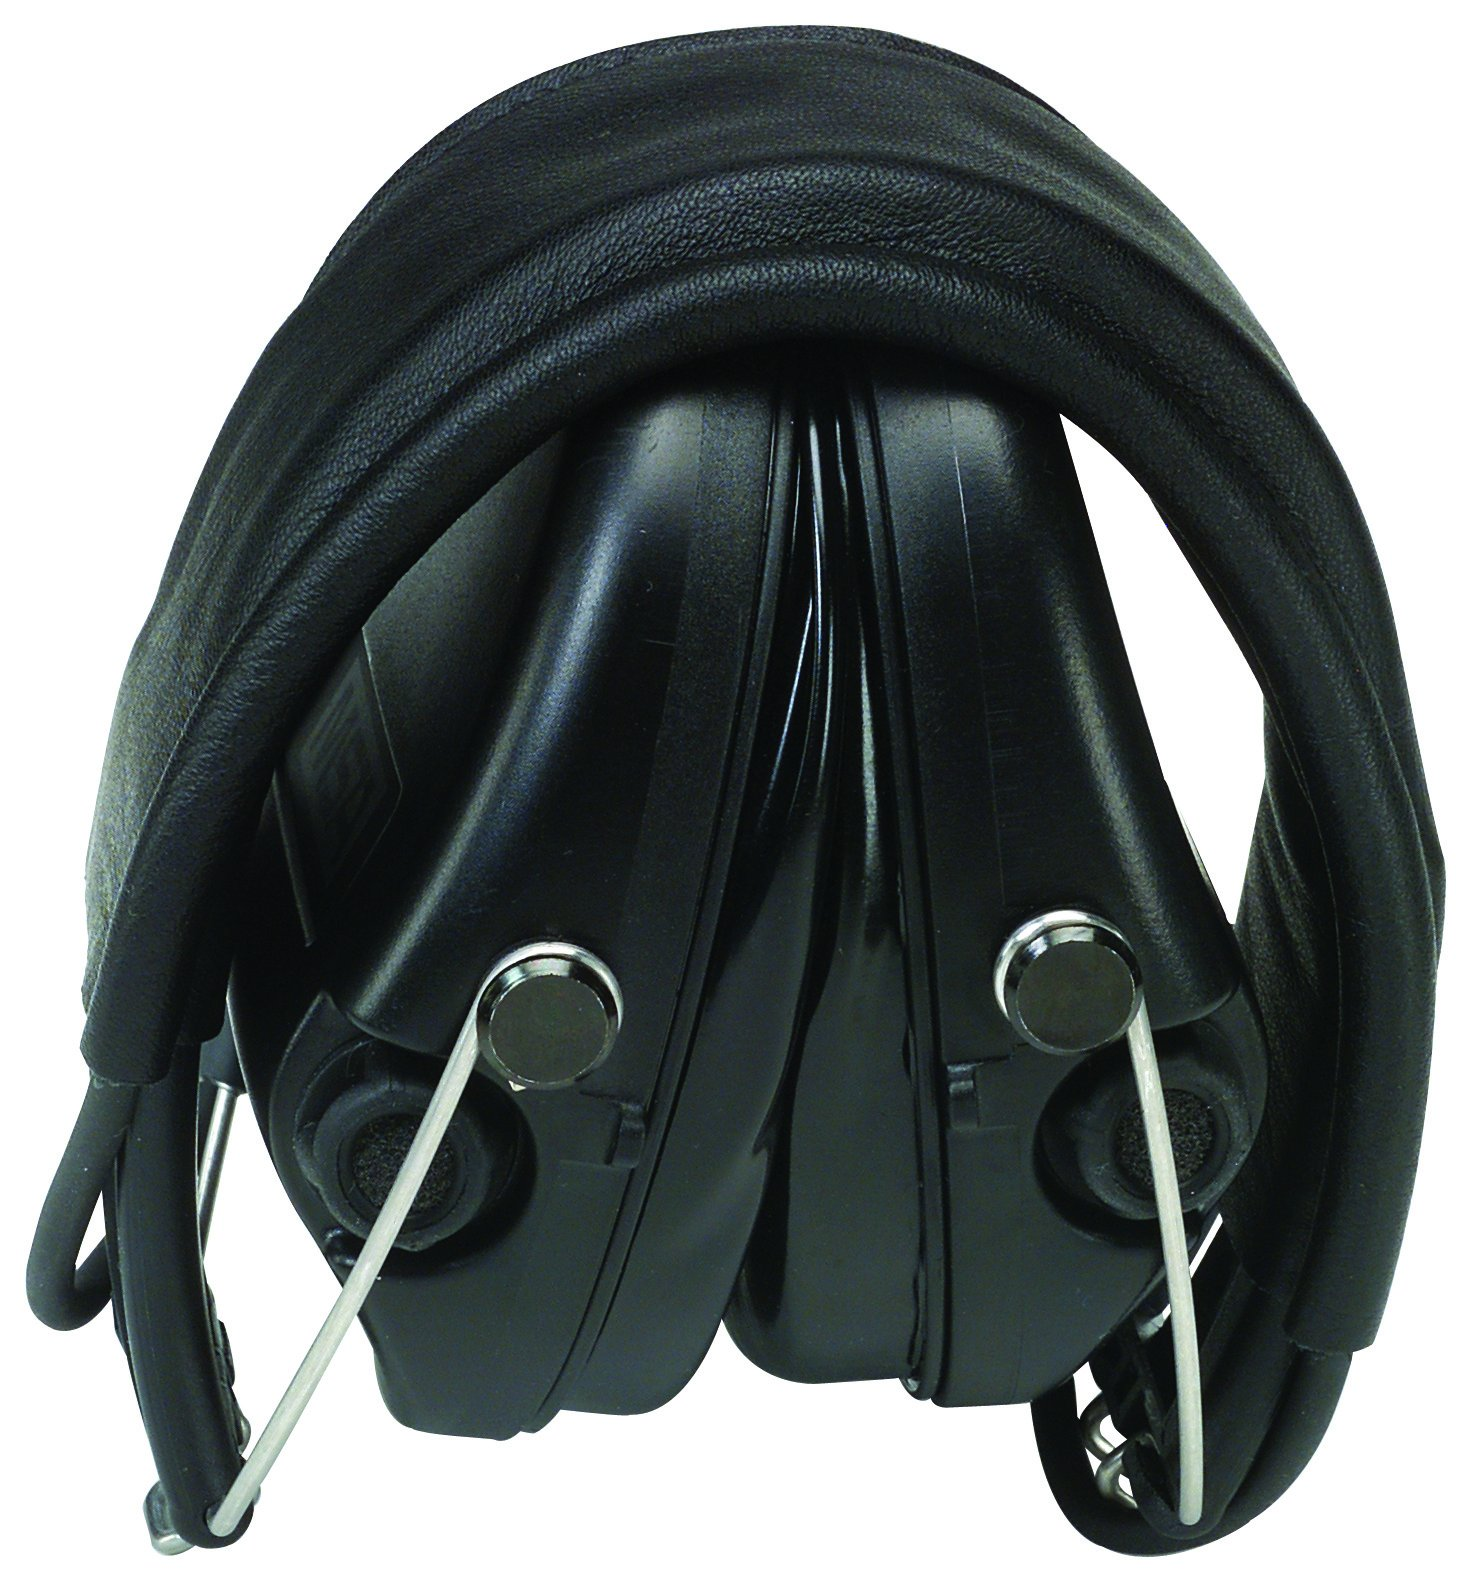 Electronic Ear Muff, 19dB, Over-The-H, Bk